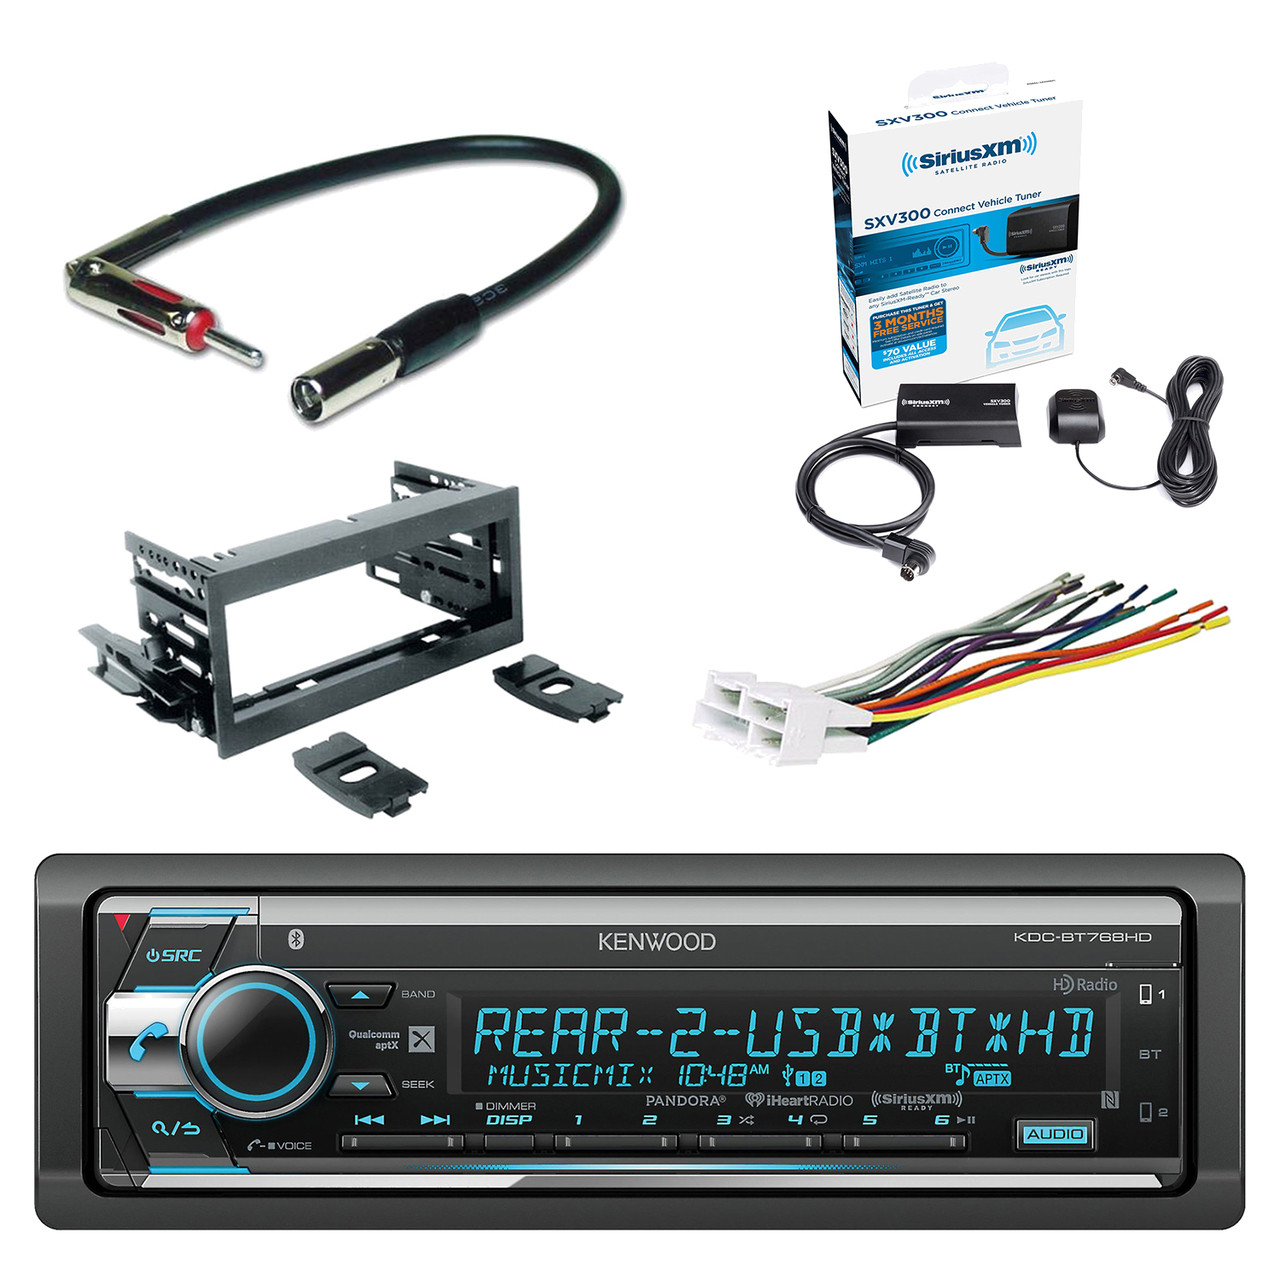 small resolution of kenwood single din cd am fm car audio receiver with bluetooth xm radio wiring harness adapter